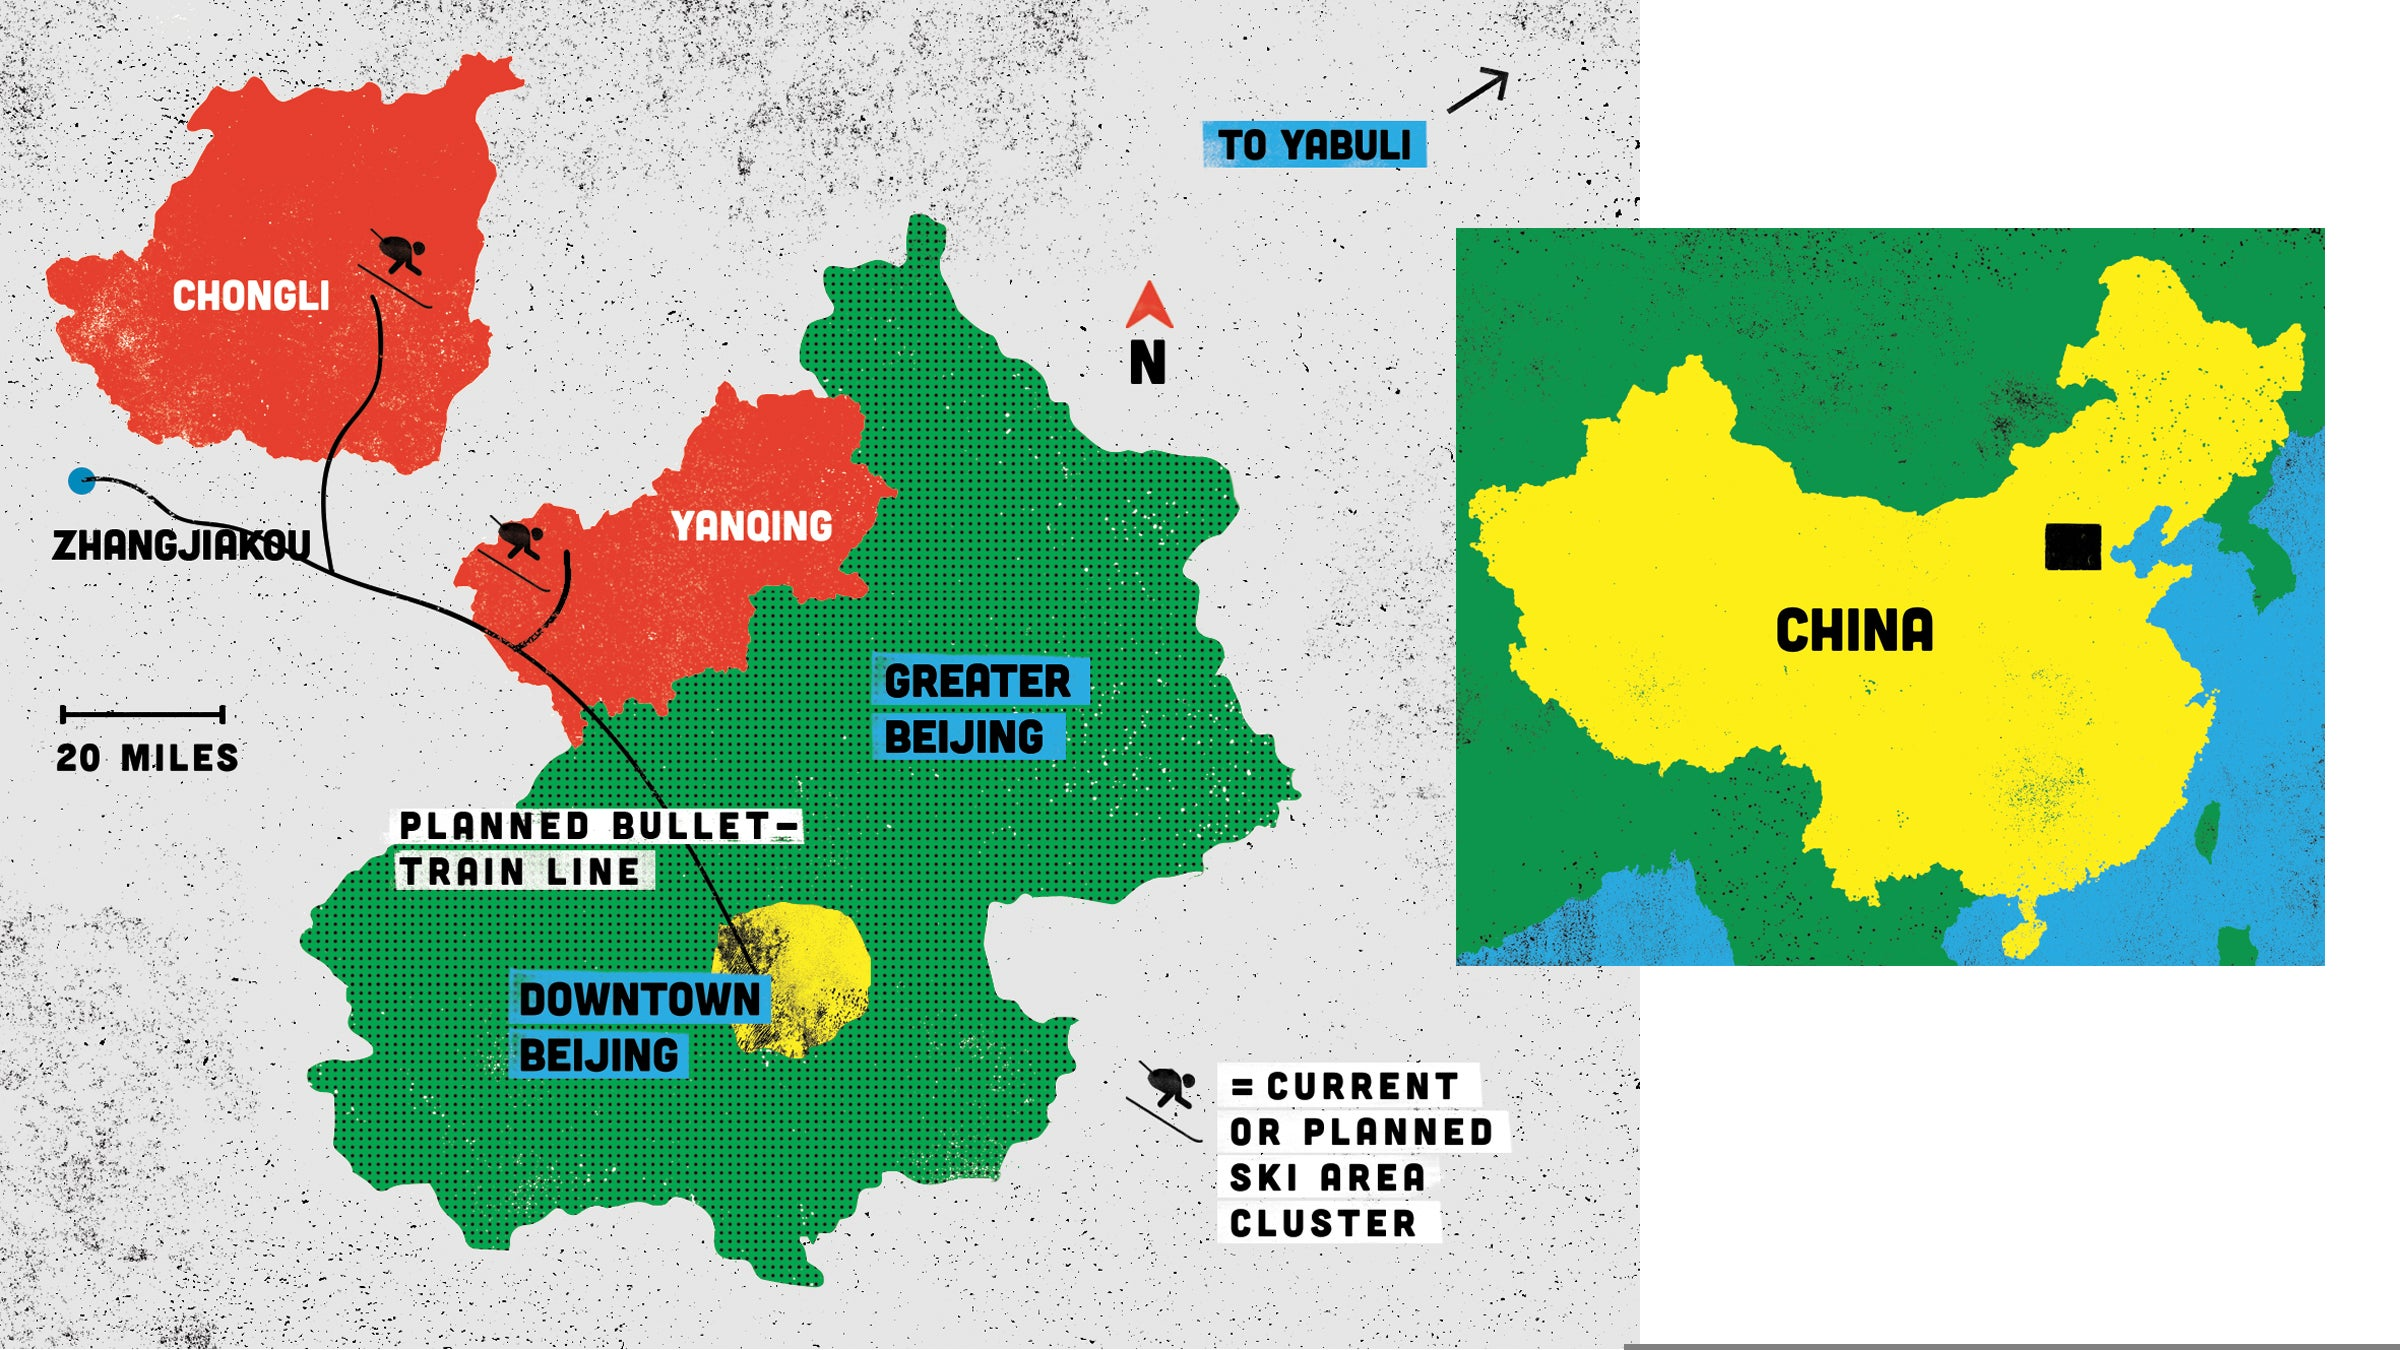 A map of ski areas and planned bullet trains near Bejing.